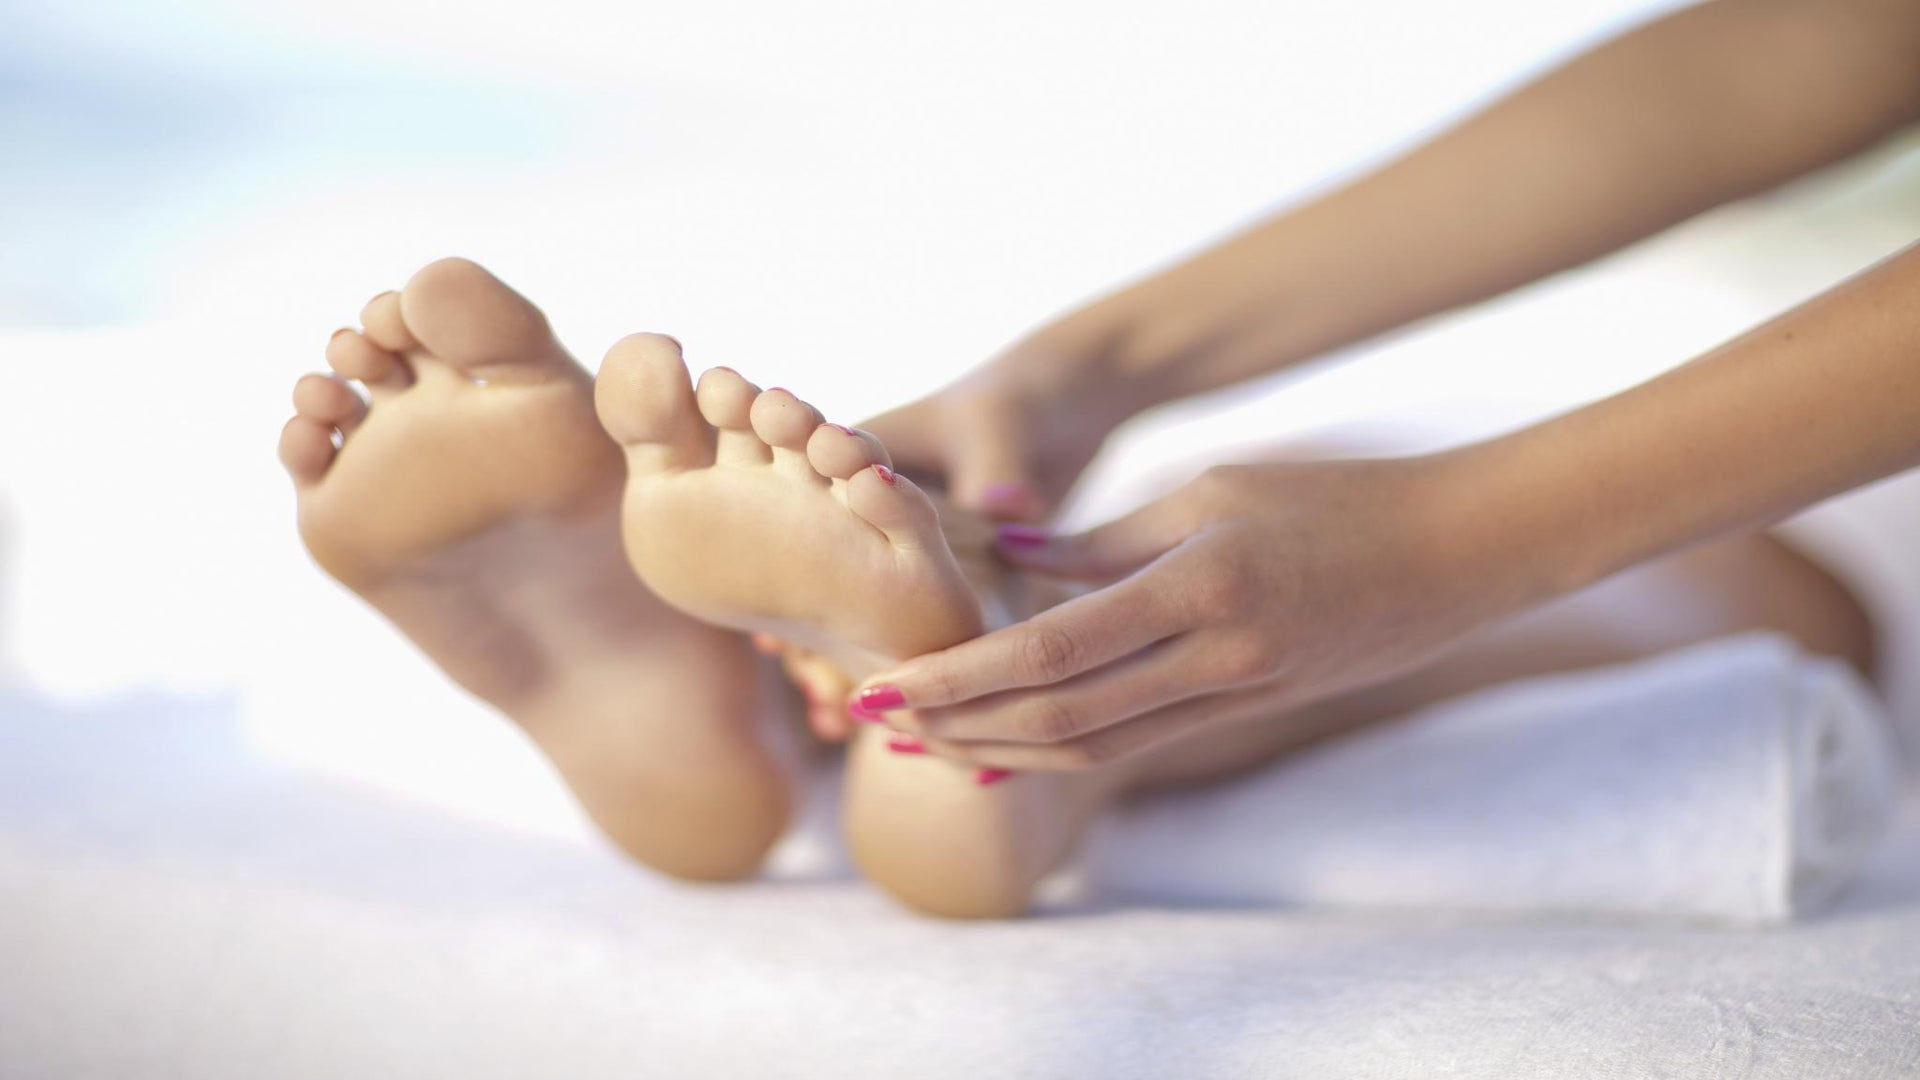 A Masseuse Gives Tips on How to Give the Perfect Massage